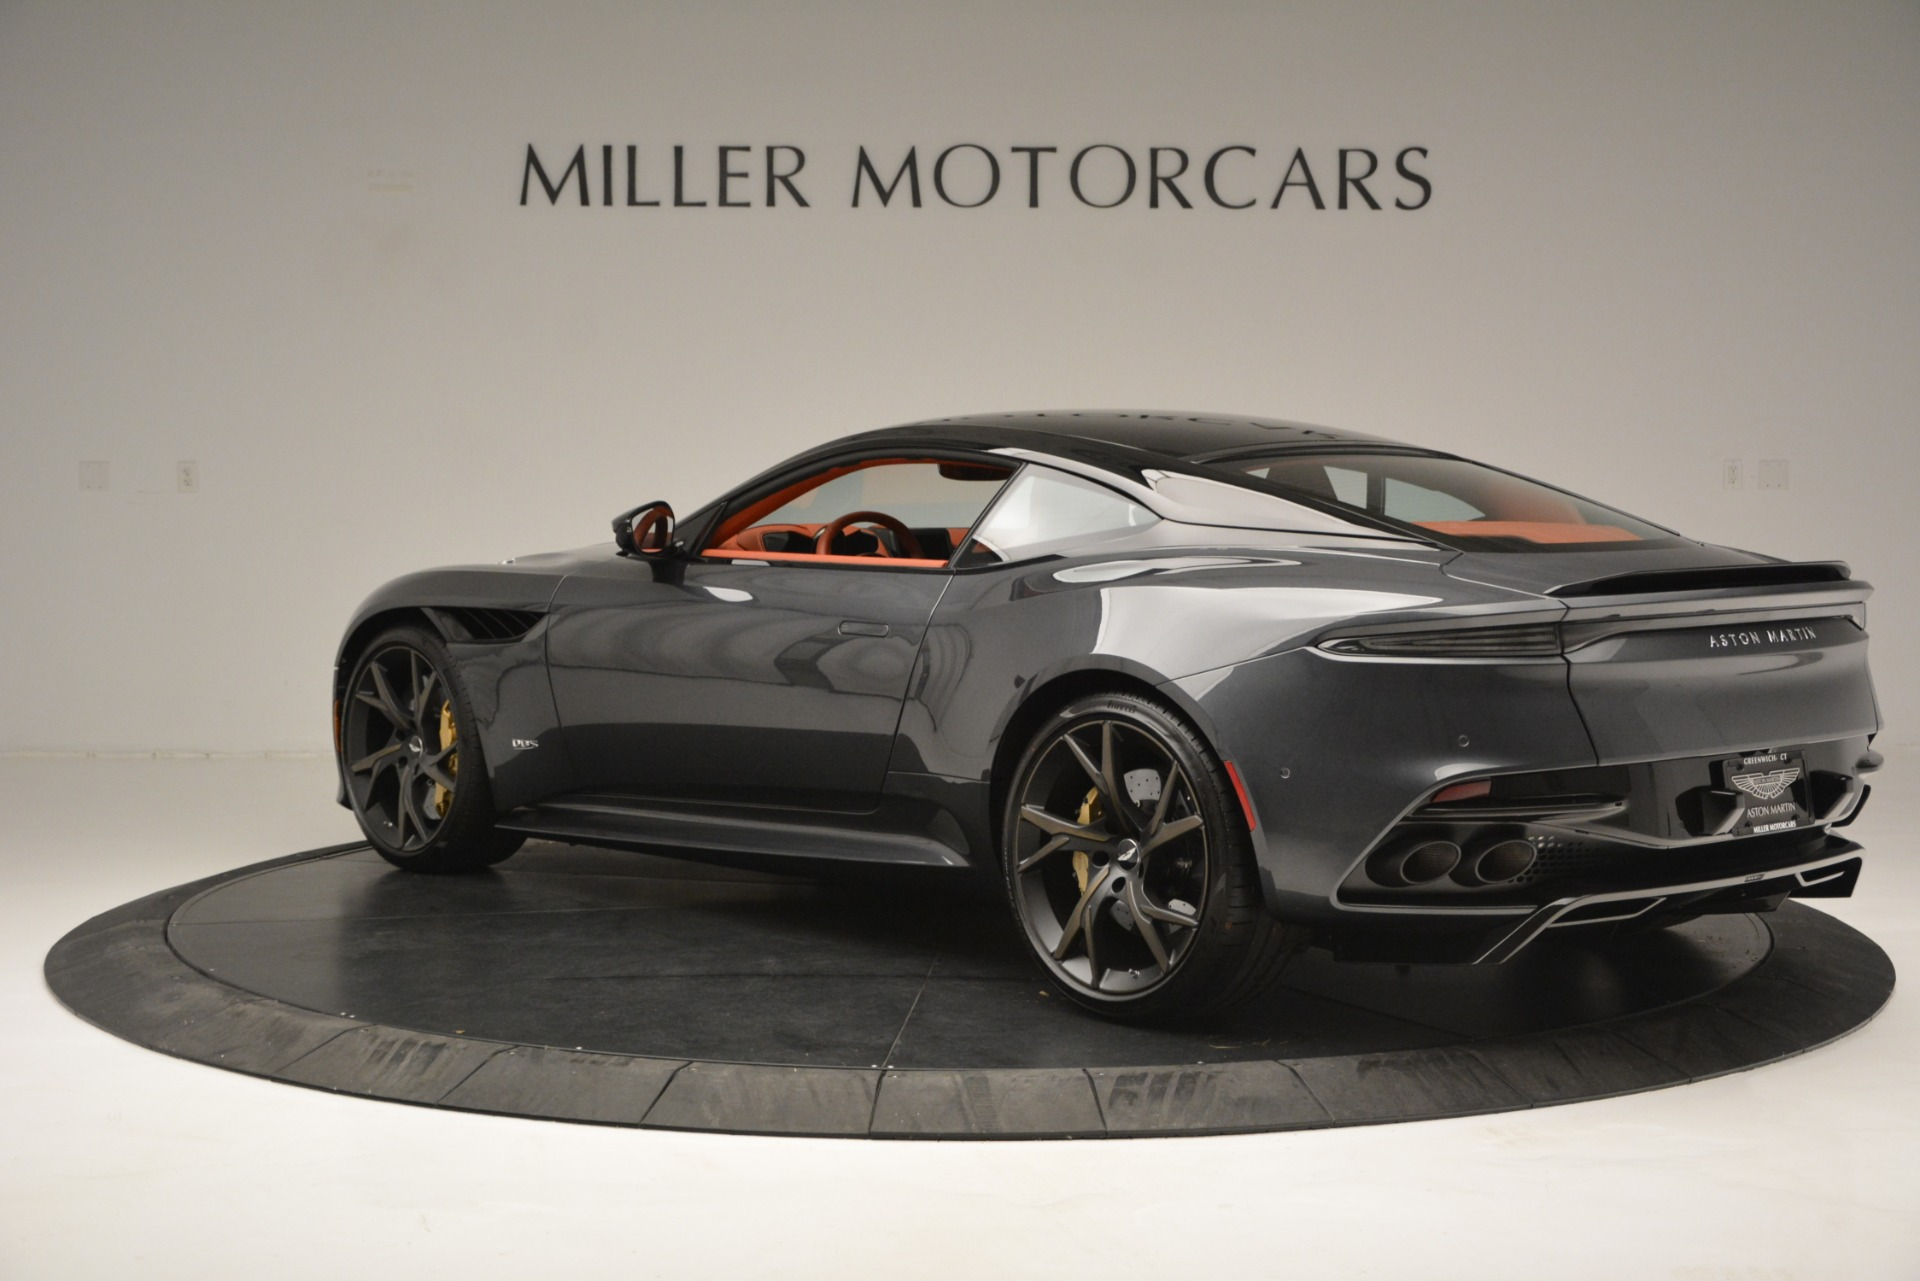 New 2019 Aston Martin DBS Superleggera For Sale In Westport, CT 2827_p4